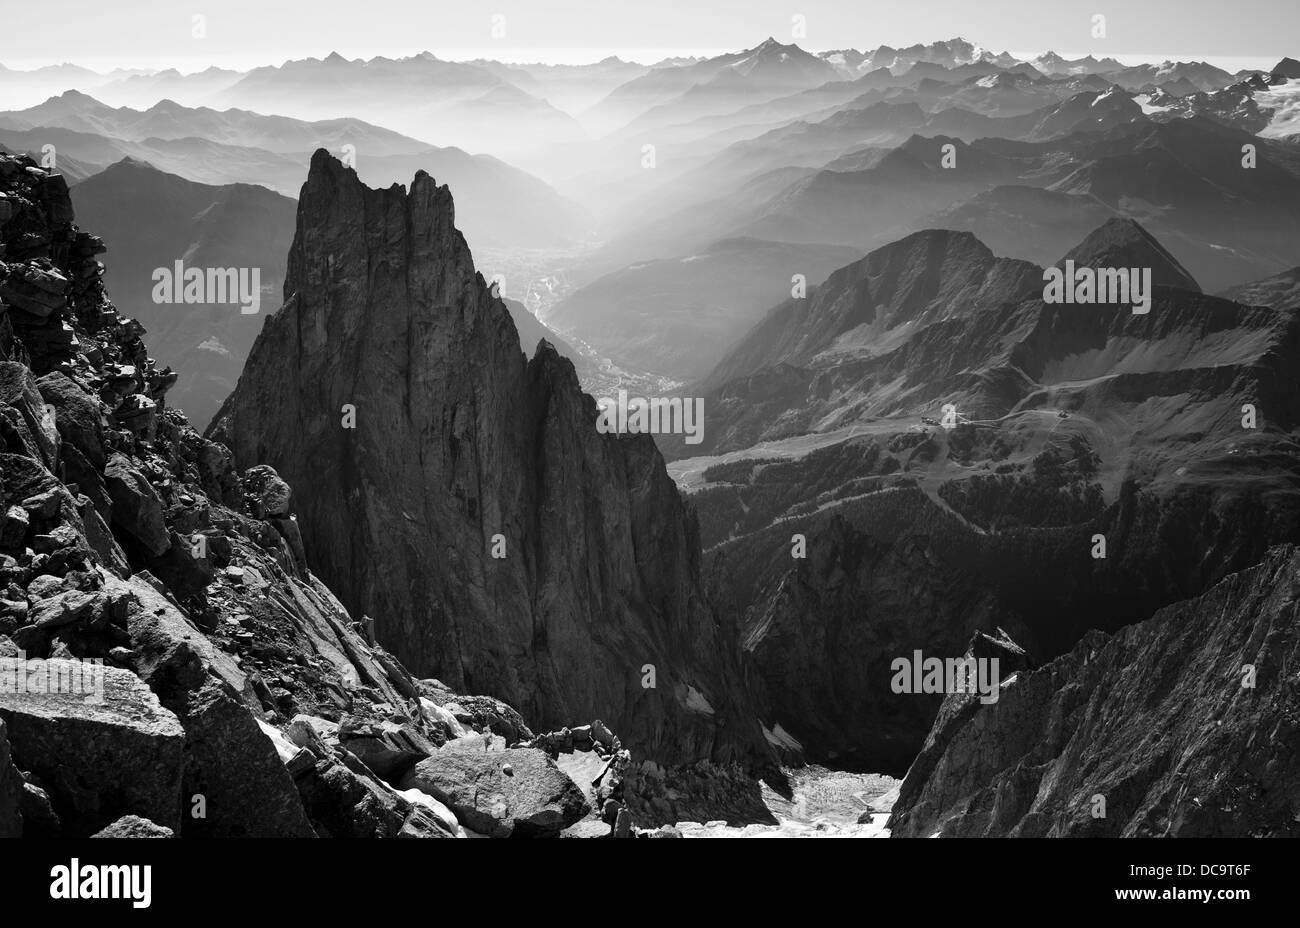 A look at Aiguille Noire de Peuterey and Aosta Valley from refugio Lampugnani (Eccles). Italy. Courmayeur. Monte - Stock Image